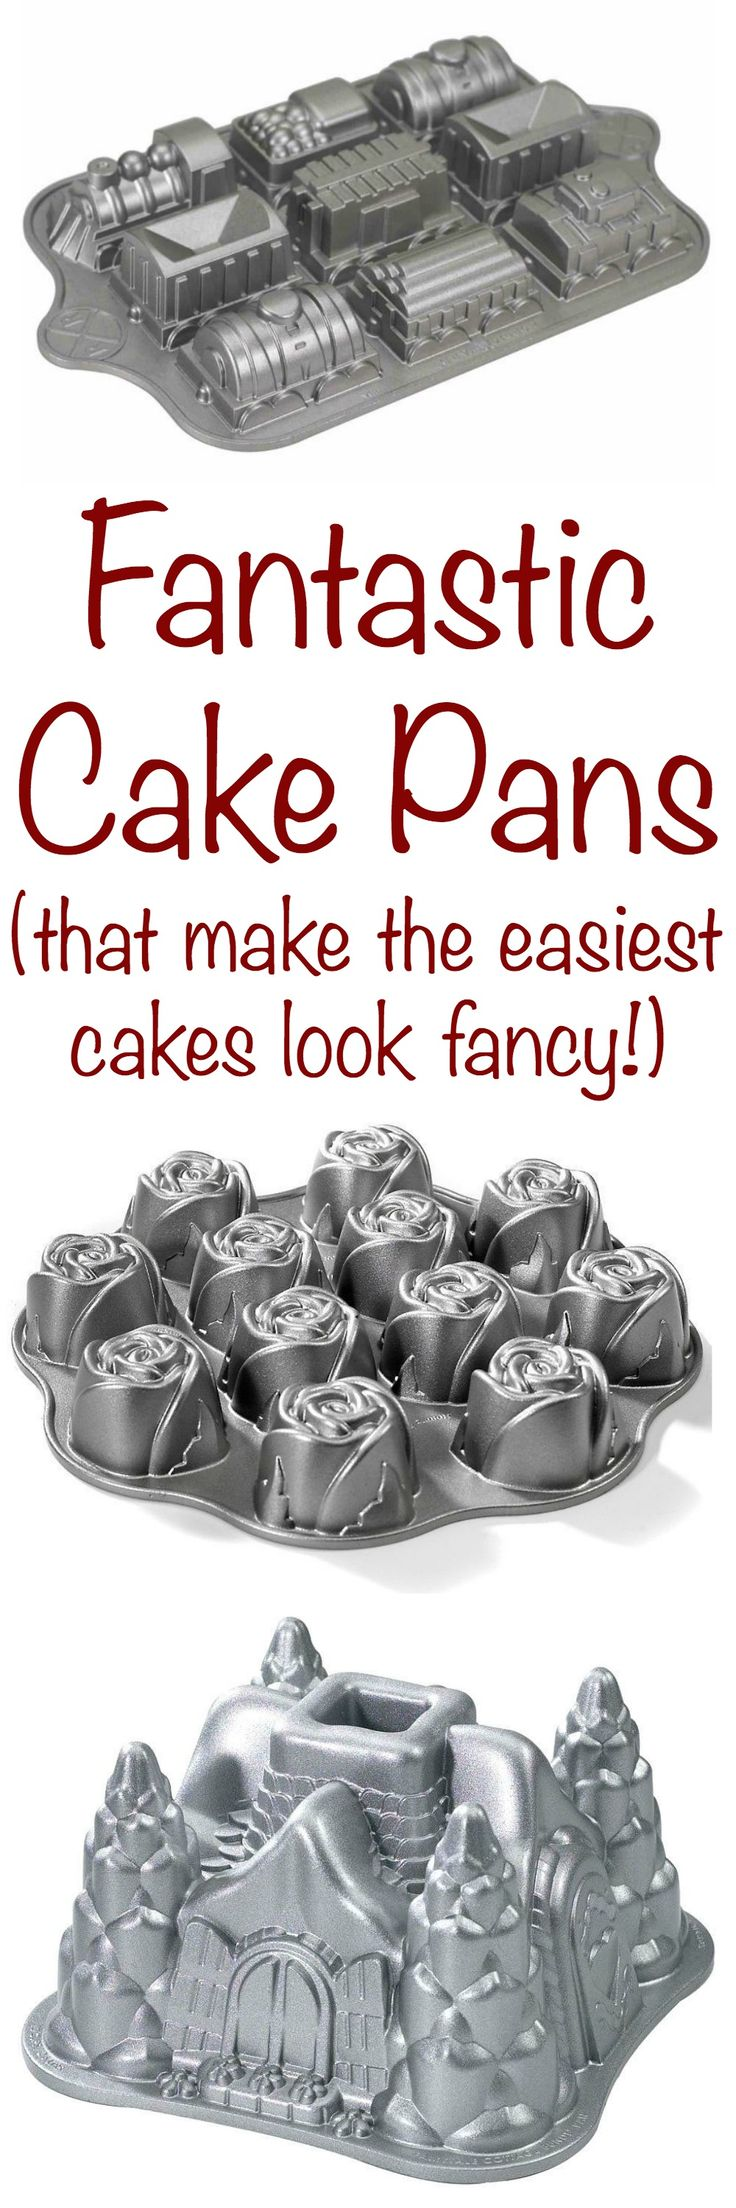 Even the simplest cakes can be dressed up with a fun cake pan. Check out these cake molds for all your baking needs!